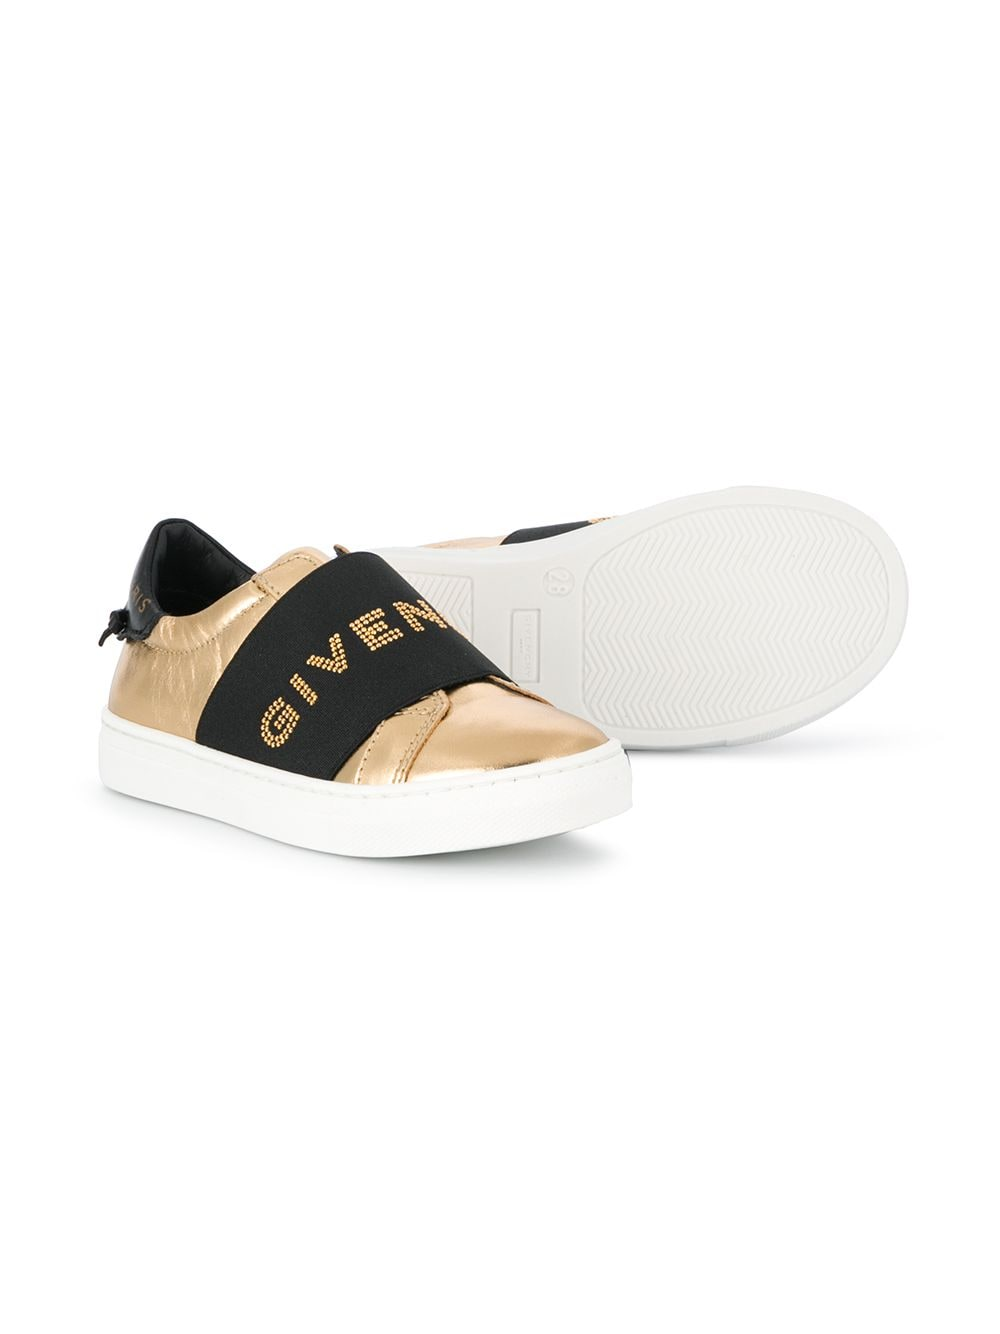 Gold sneakers GIVENCHY |  | H19038Z98